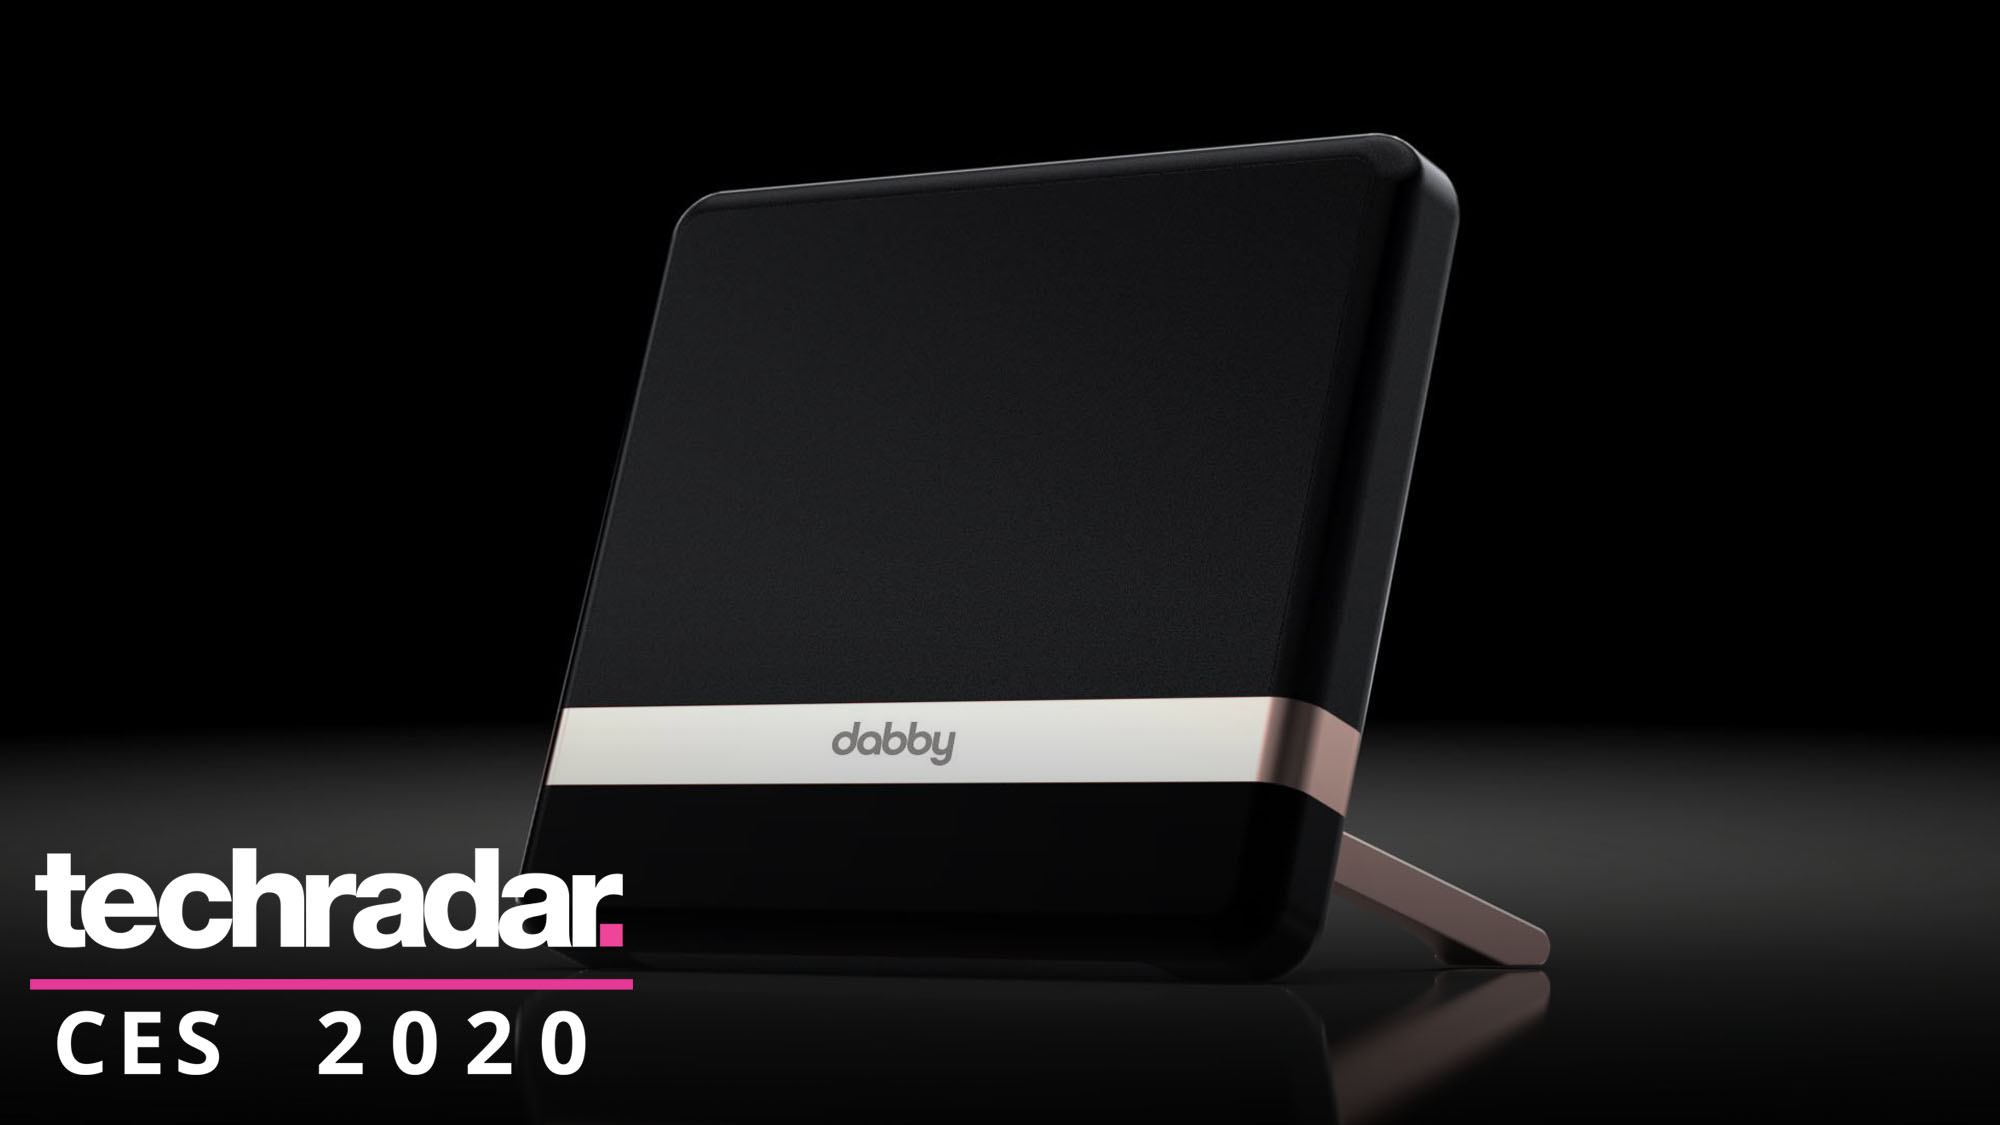 Dabby, the streaming device that merges Netflix and other services, debuts at CES 2020